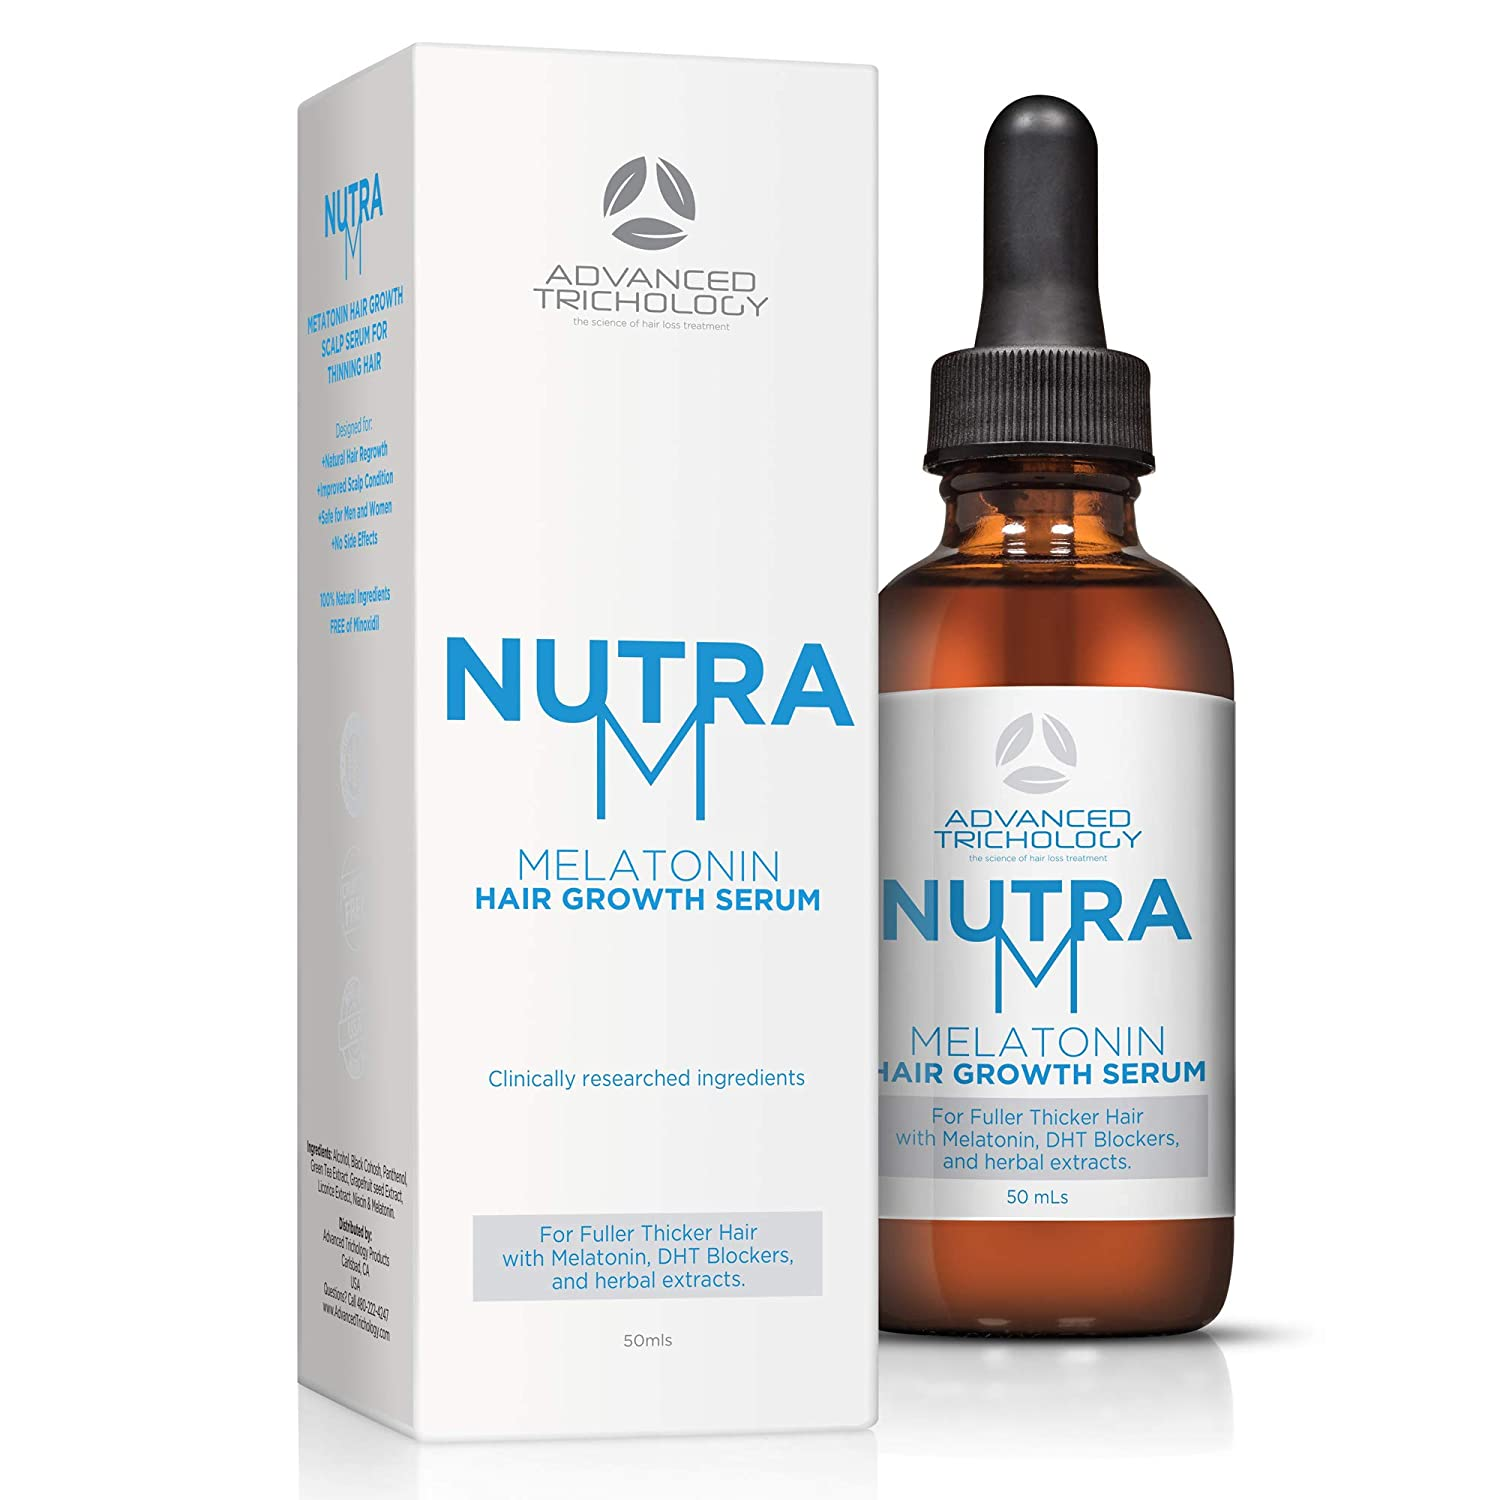 NutraM Melatonin Clinical Hair Growth Serum - DHT Blocker Hair Loss Treatments, Reverse Thinning Hair with Melatonin, and Hair Growth for Men and ...